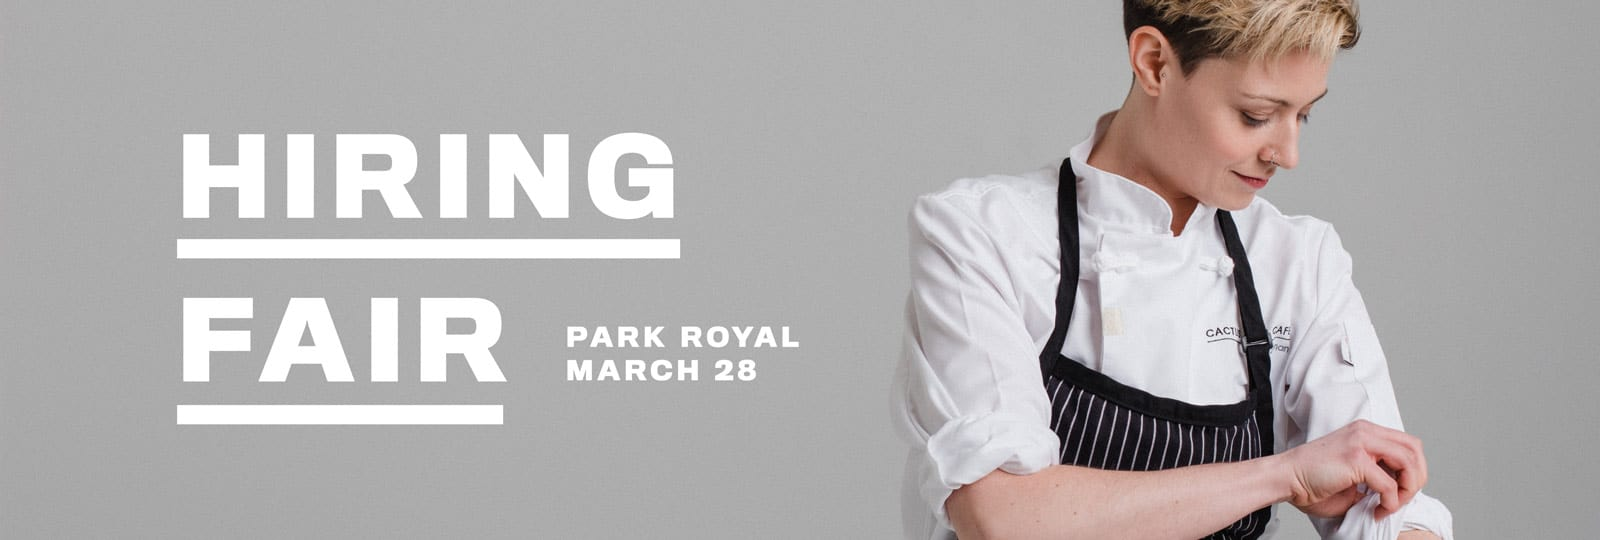 Our Park Royal location is hiring for all positions on March 28.